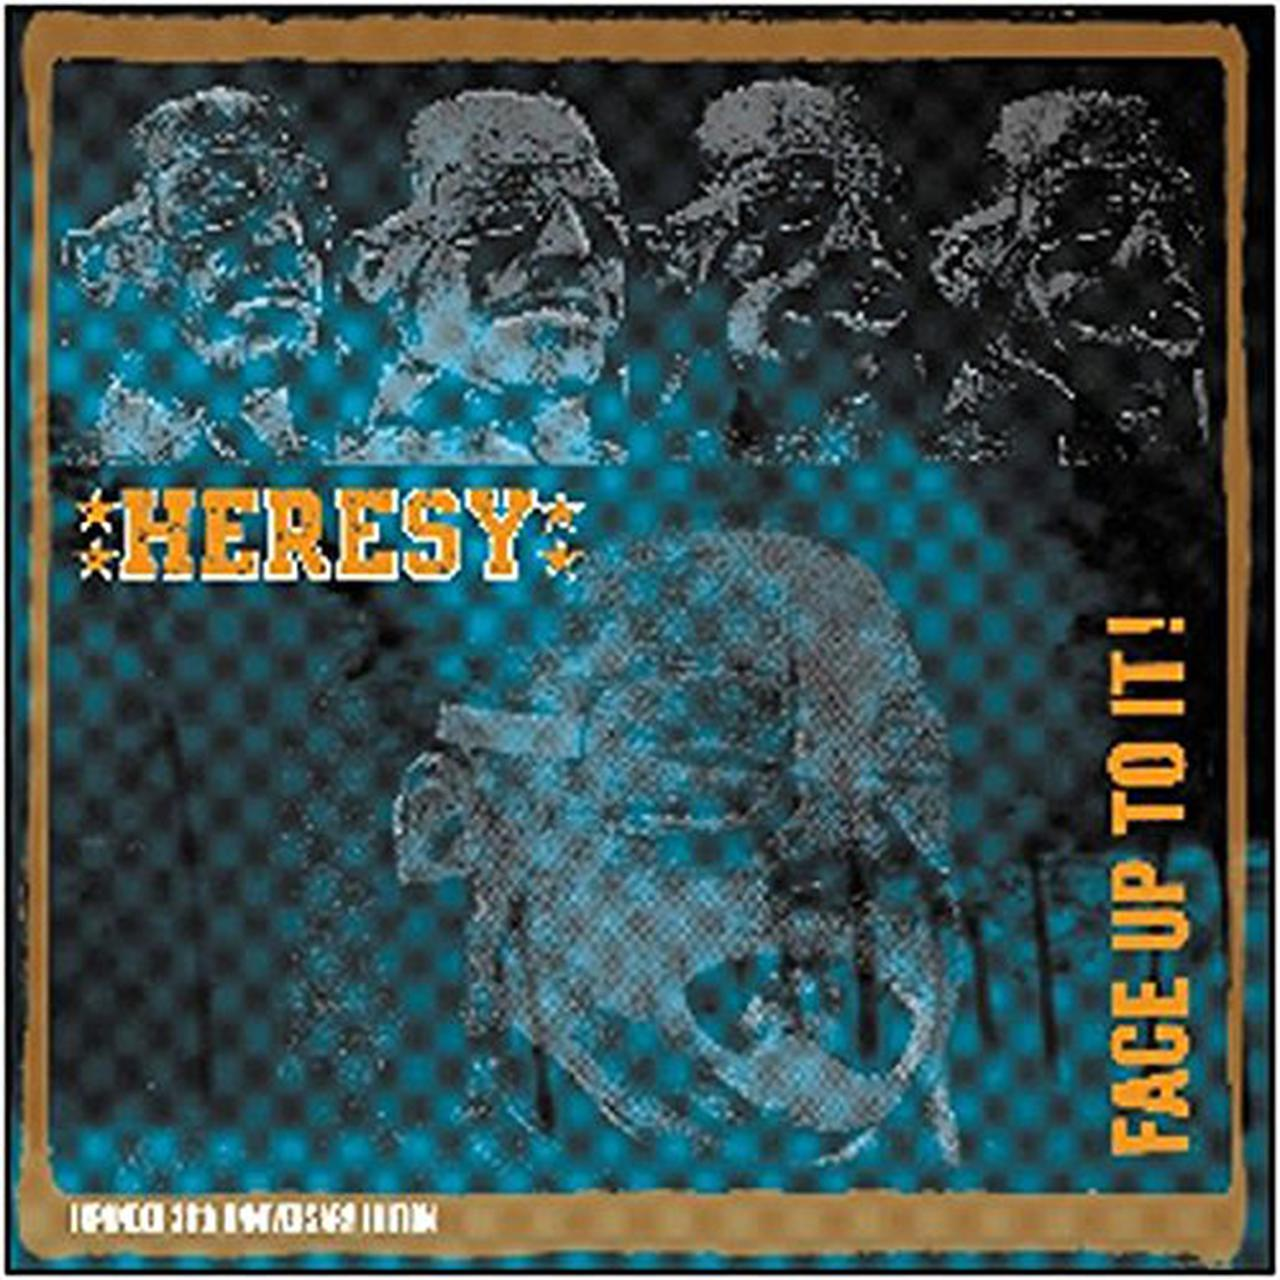 Фото - Heresy Heresy. Face Up To It! Expanded 30th Anniversary Edition (2 LP + CD) cd led zeppelin ii deluxe edition